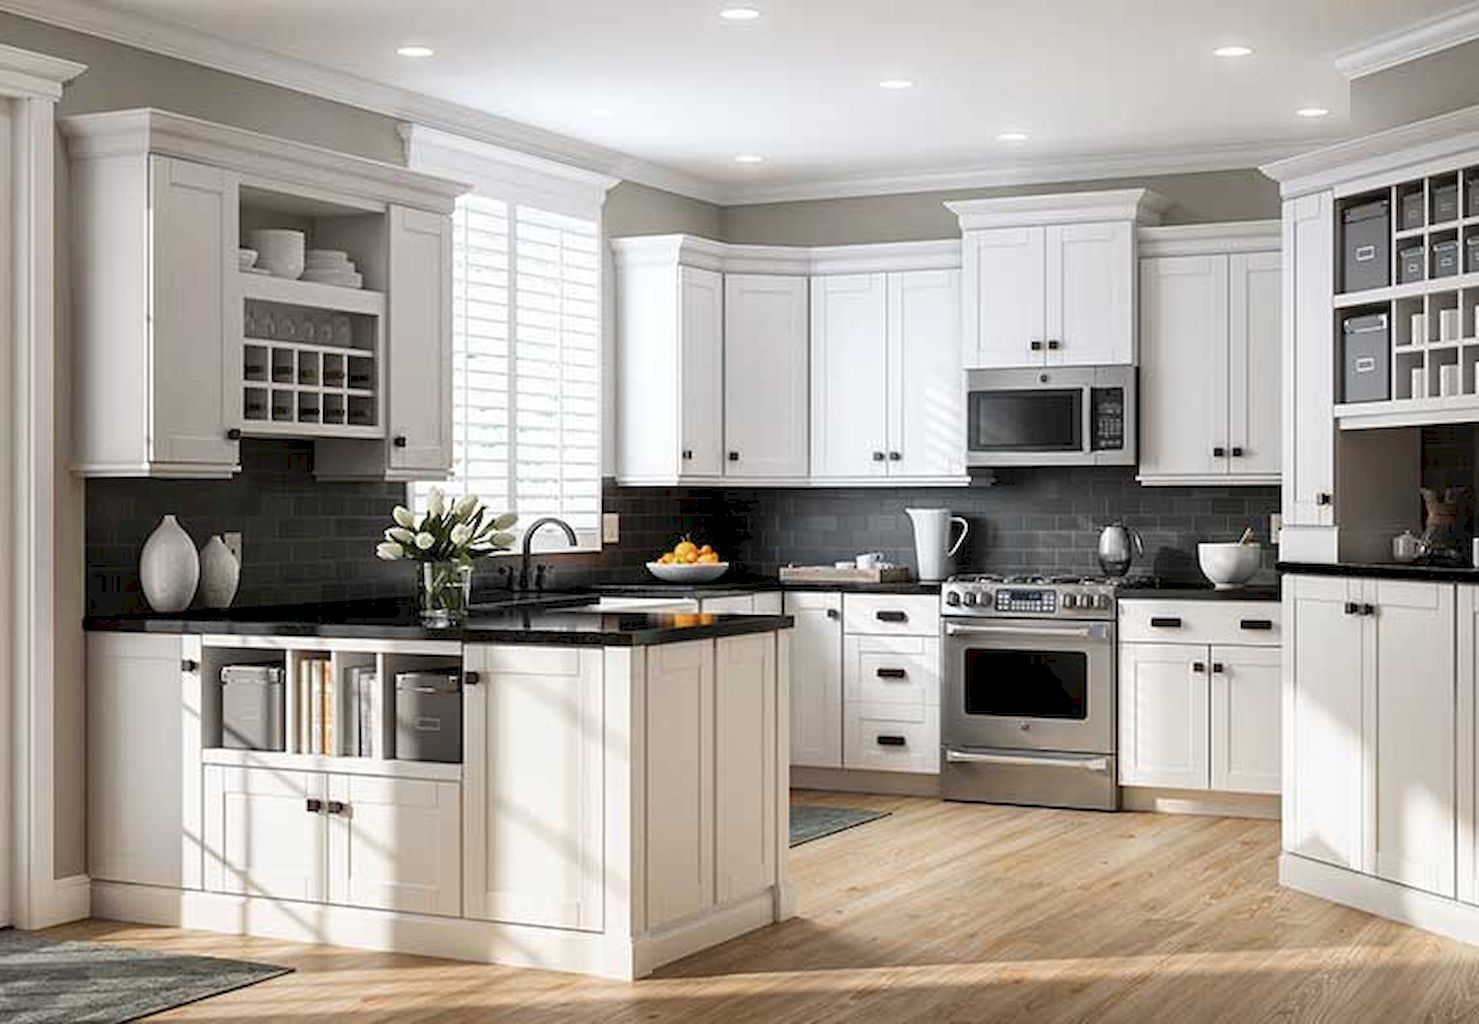 kitchencabinetpicturesimages in 2019 | Kitchen cabinets home ...